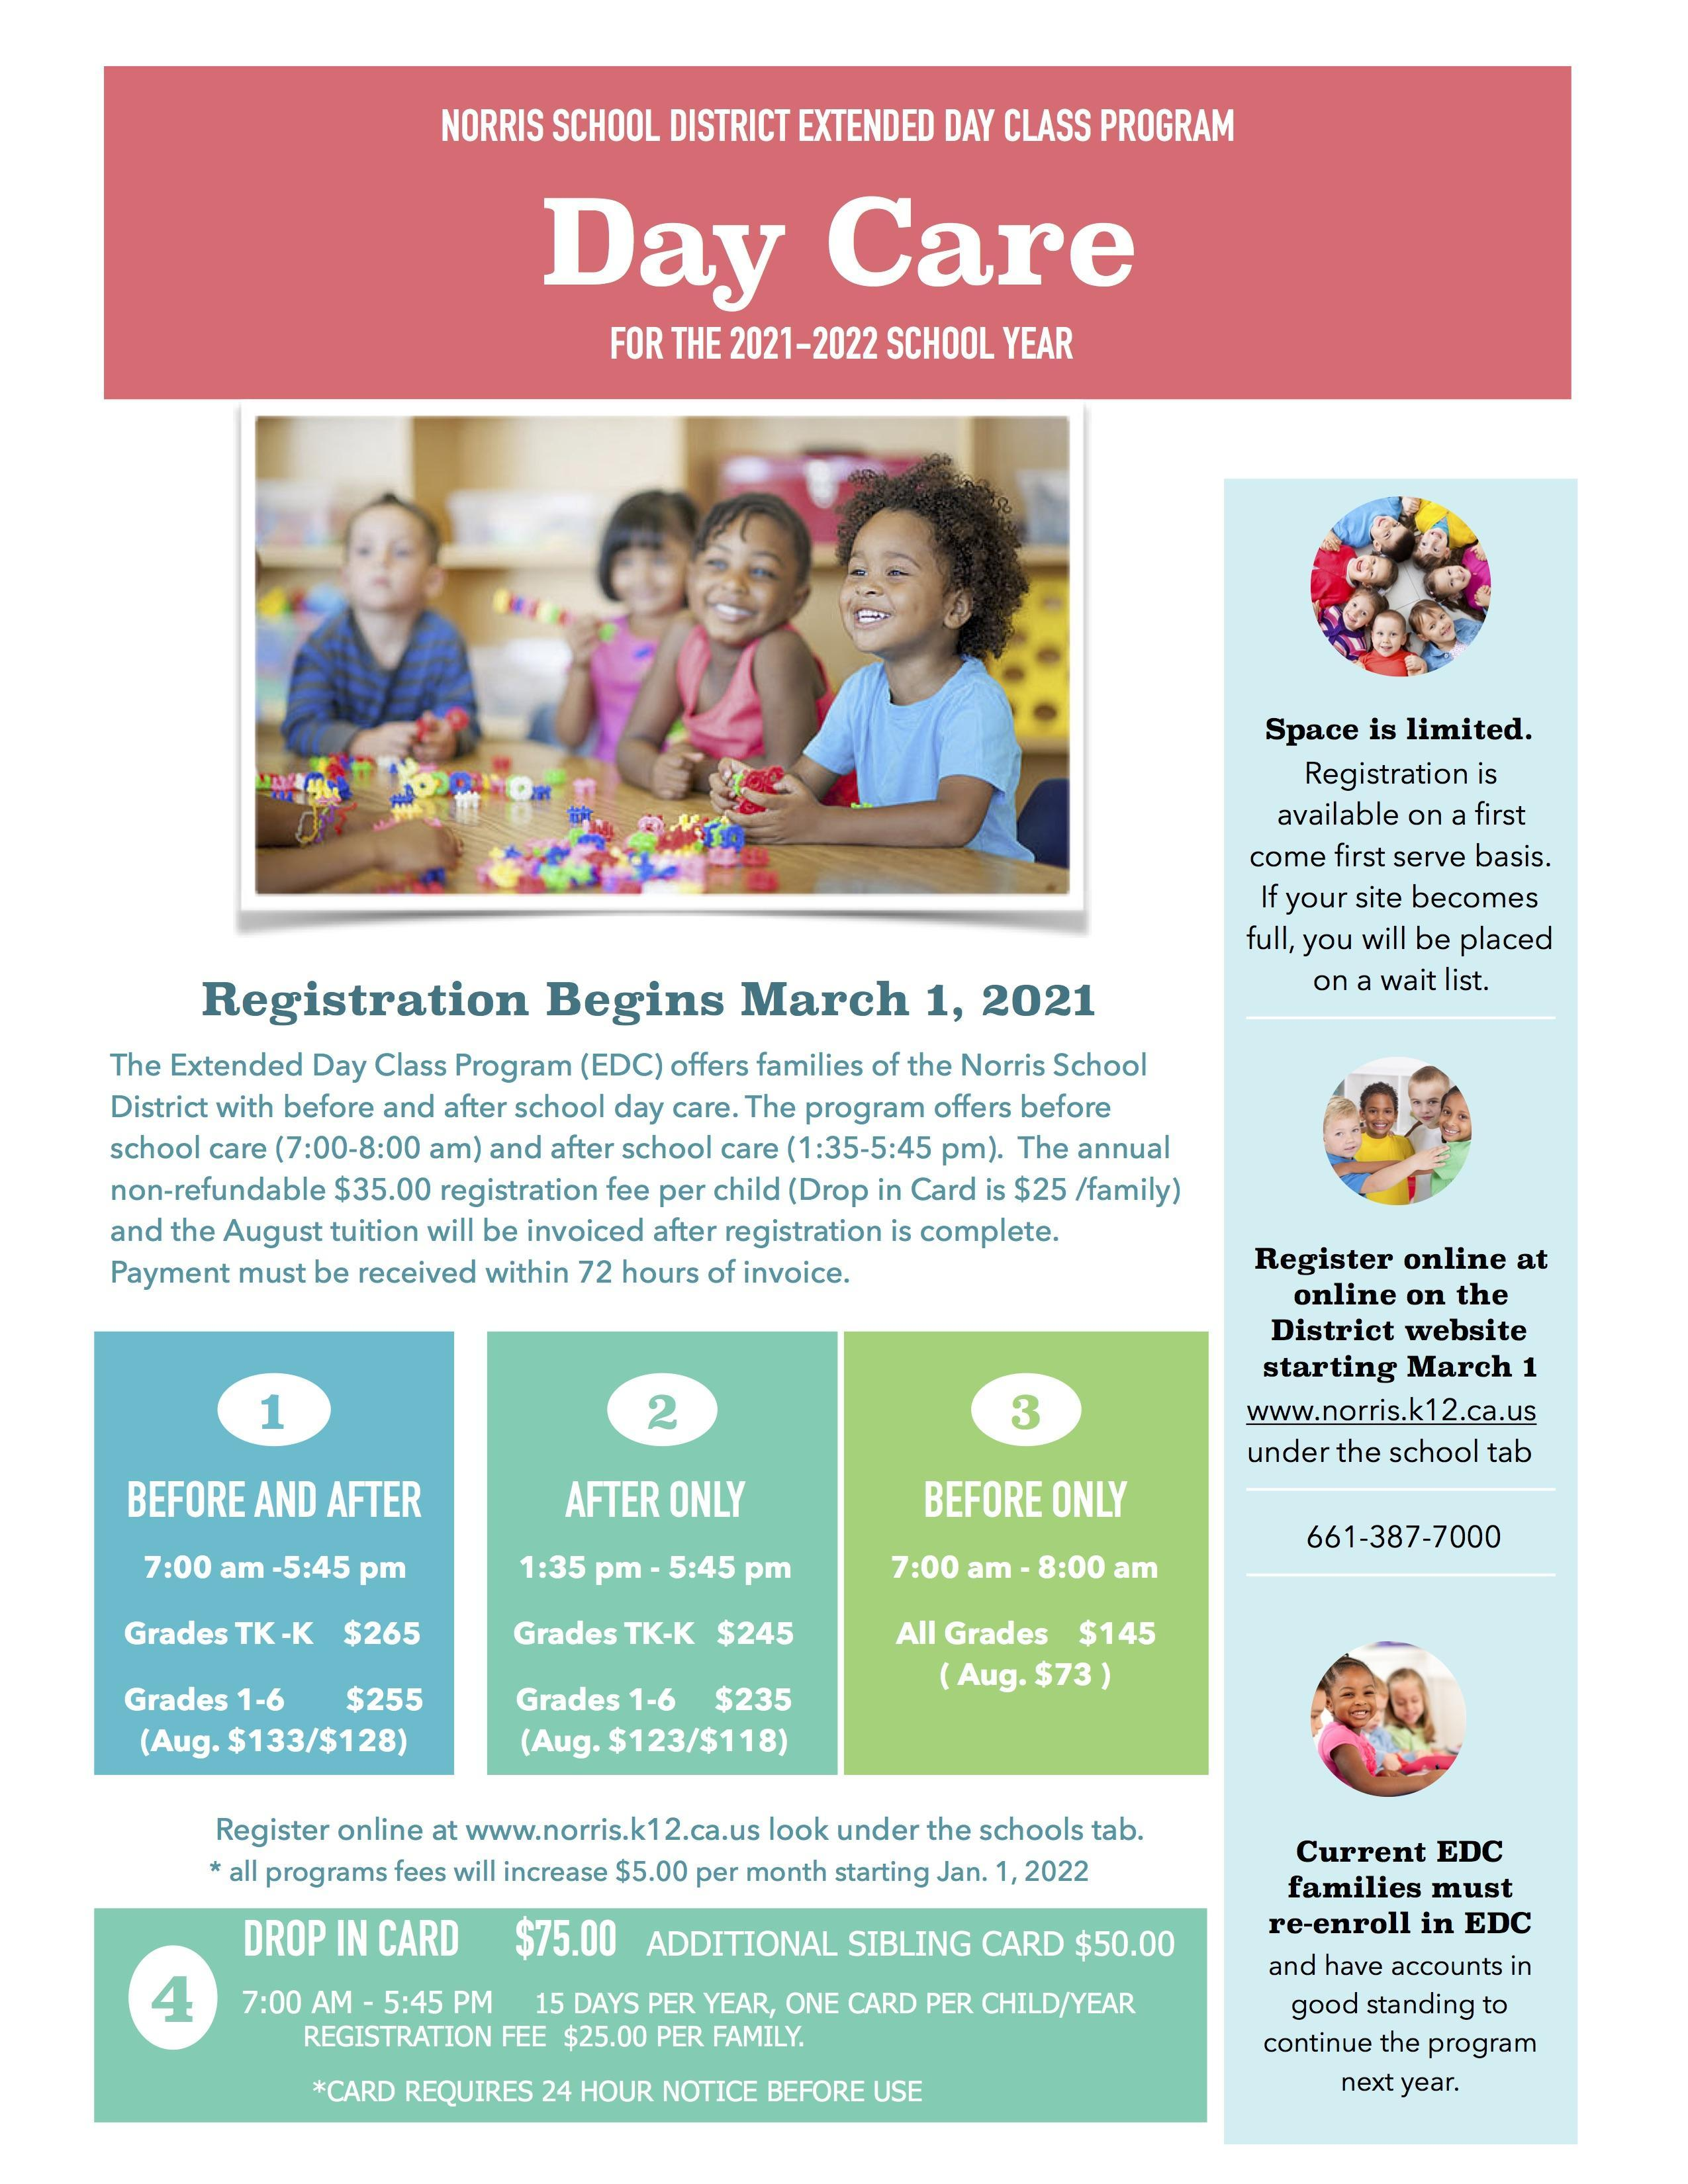 Fall 21/22 Day Care Information